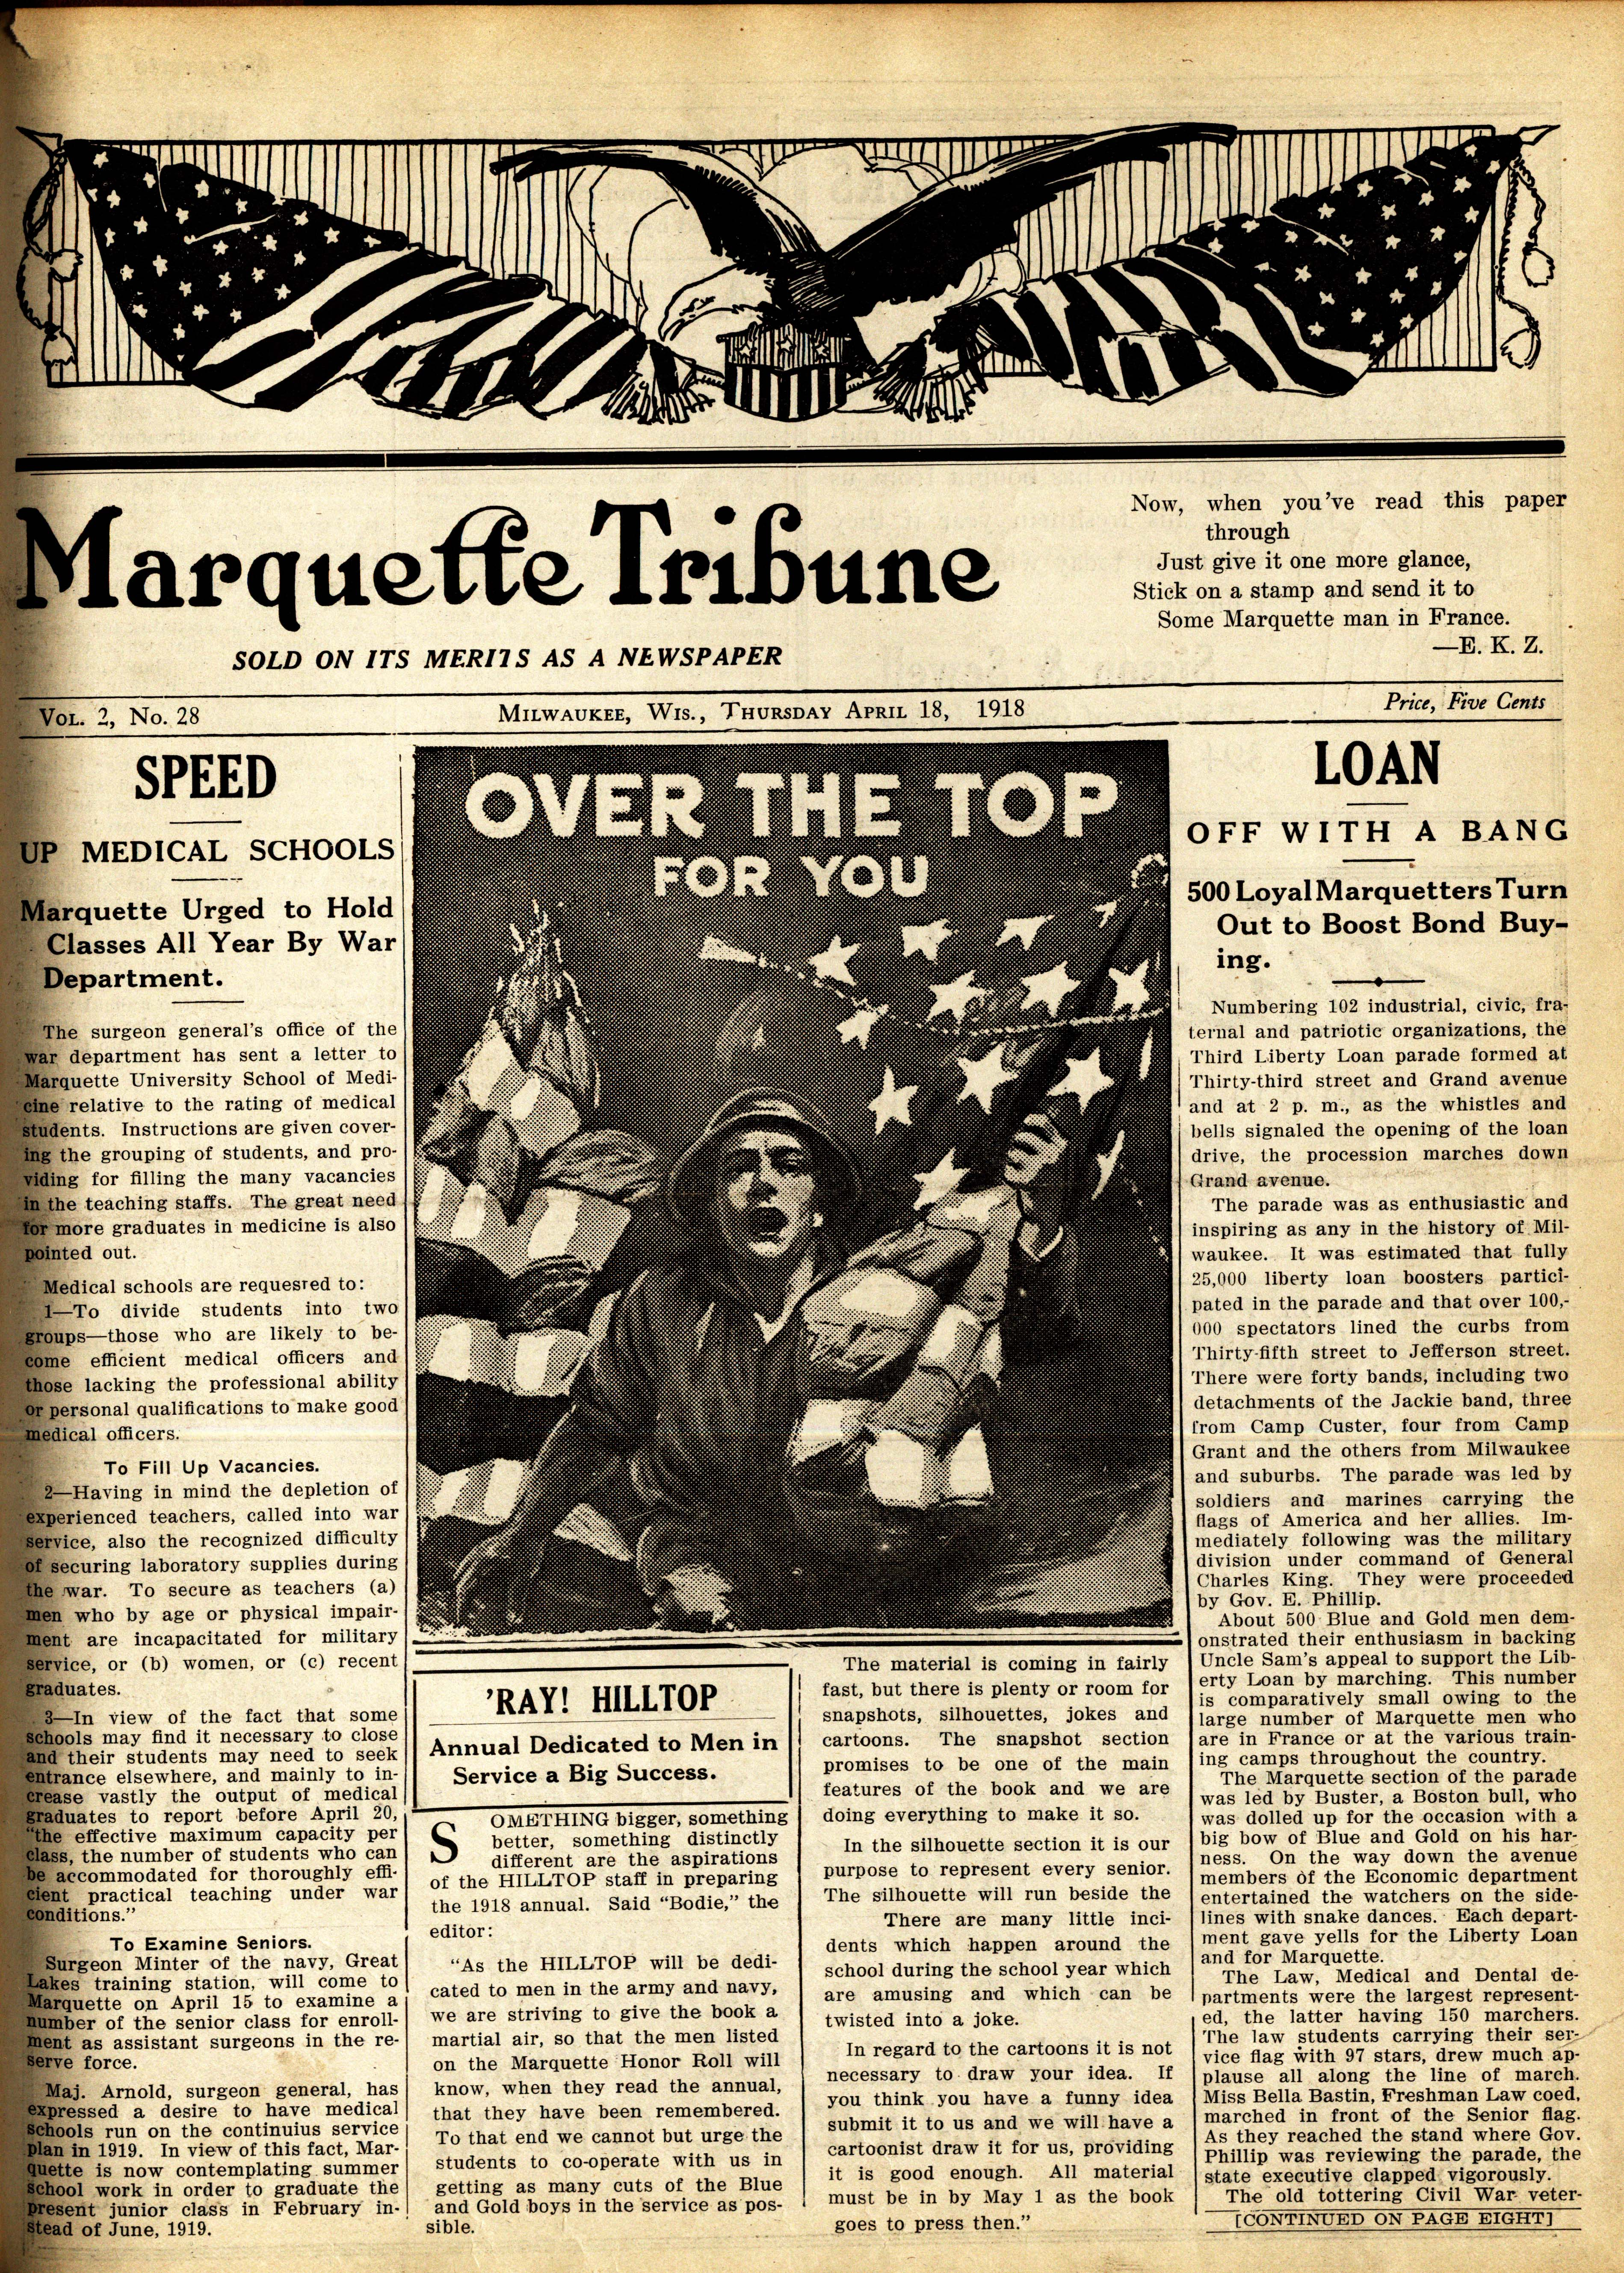 Tribune front page from April 18, 1918